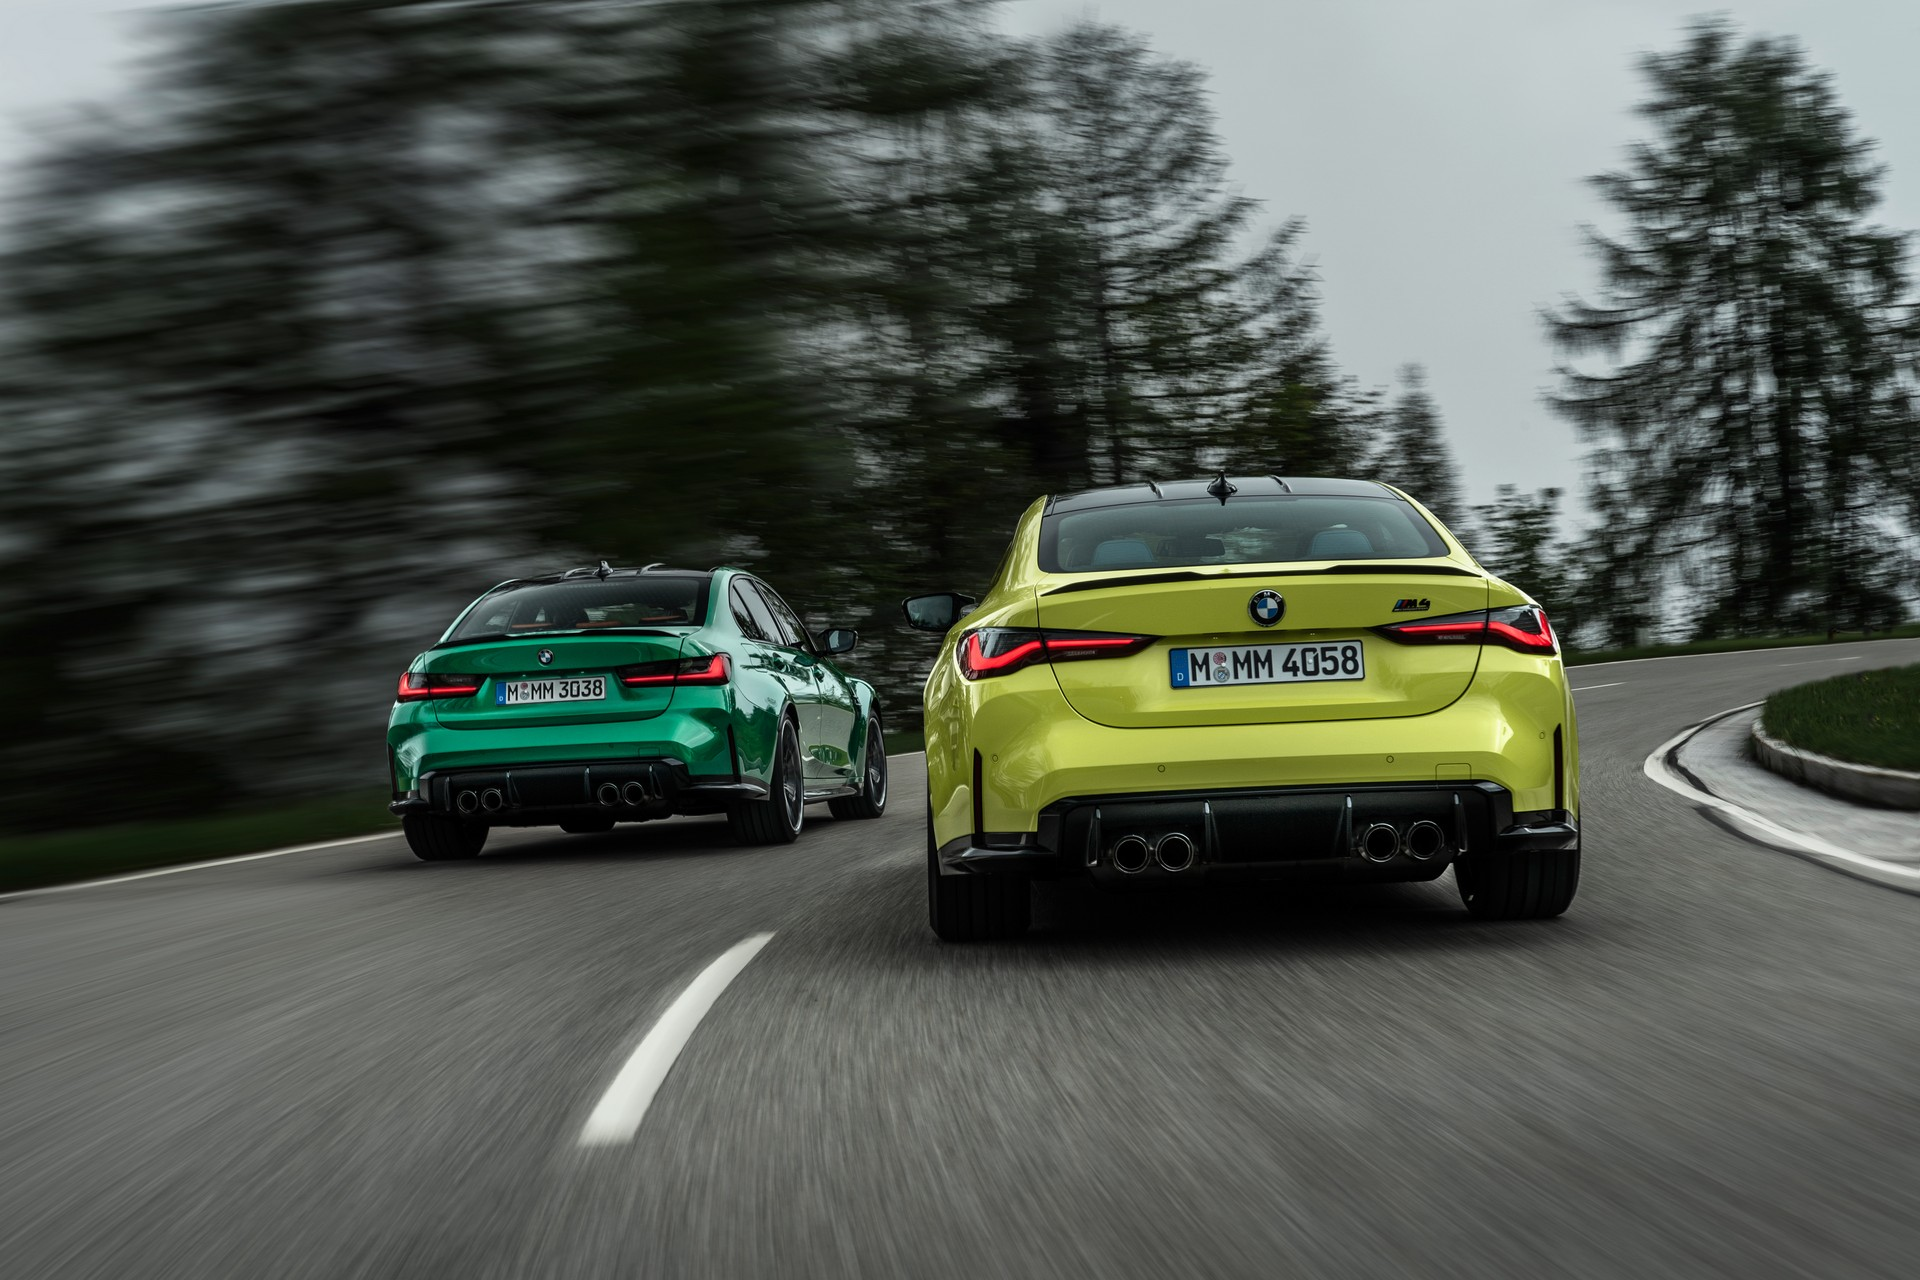 2021-bmw-m3-and-m4-3.jpg